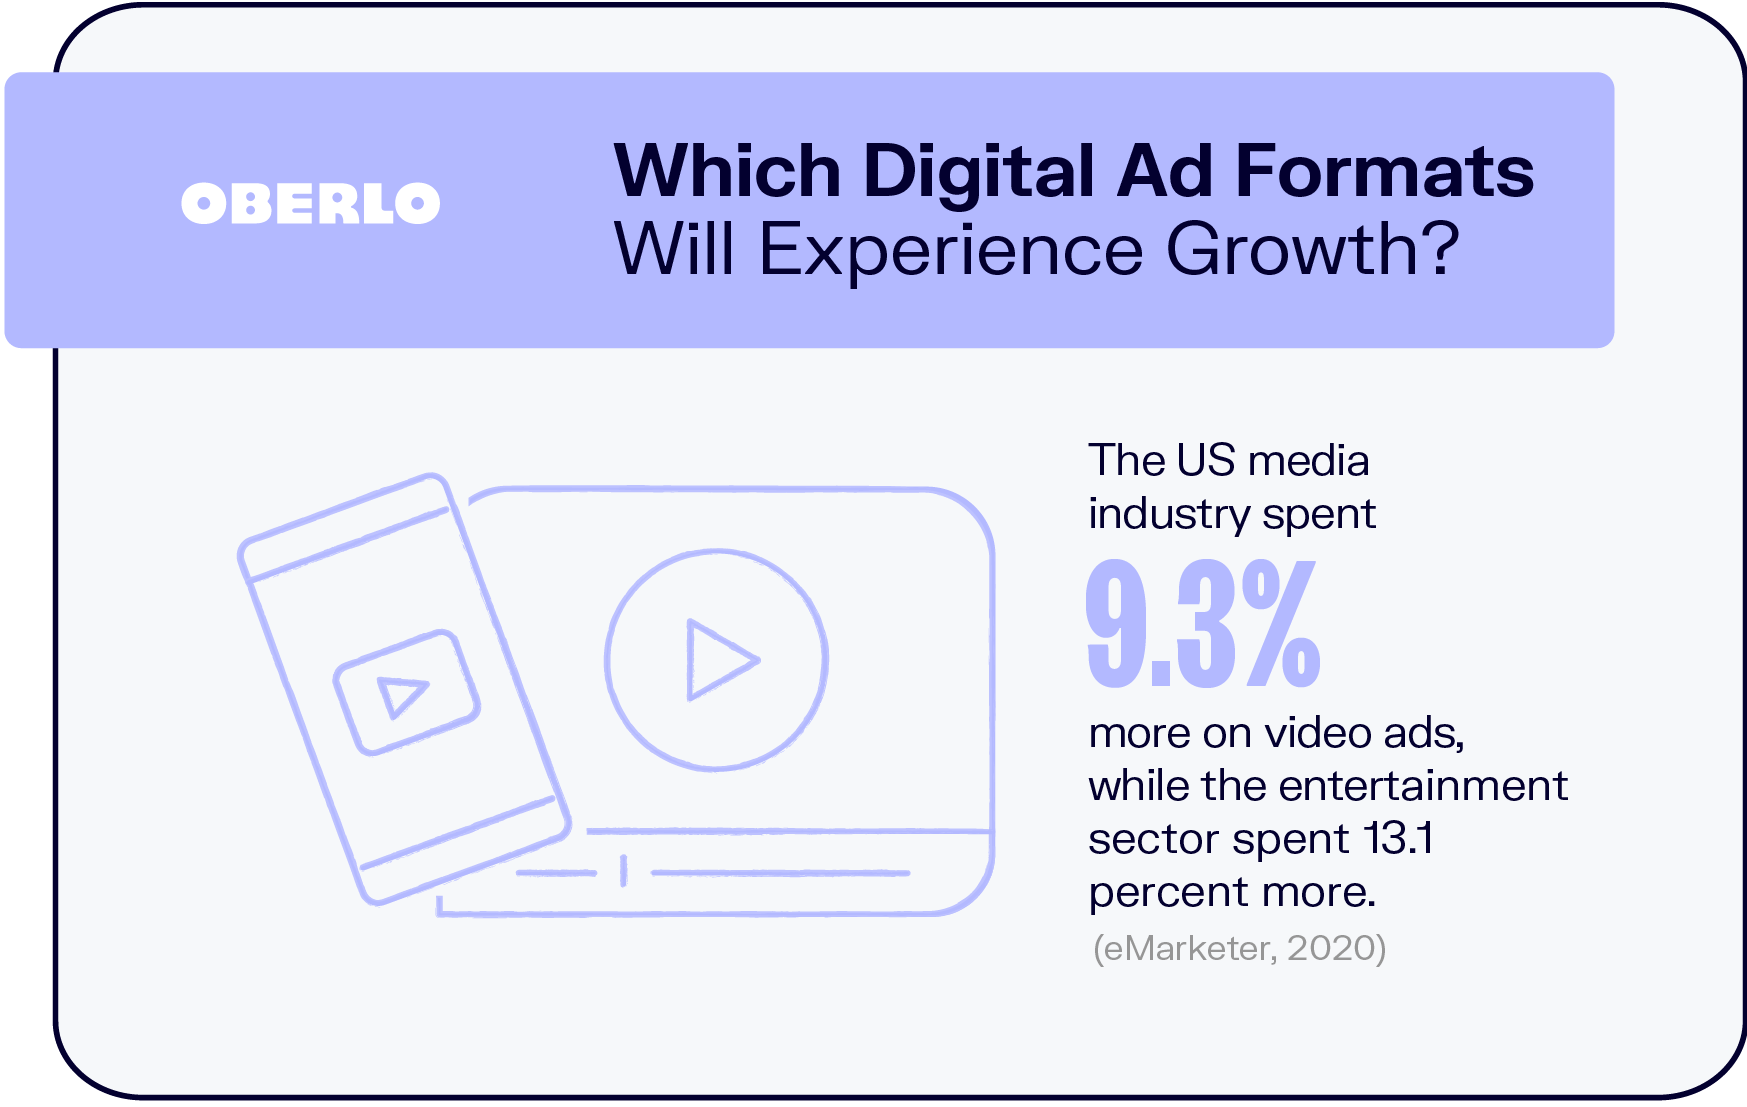 Which Digital Ad Formats Will Experience Growth?